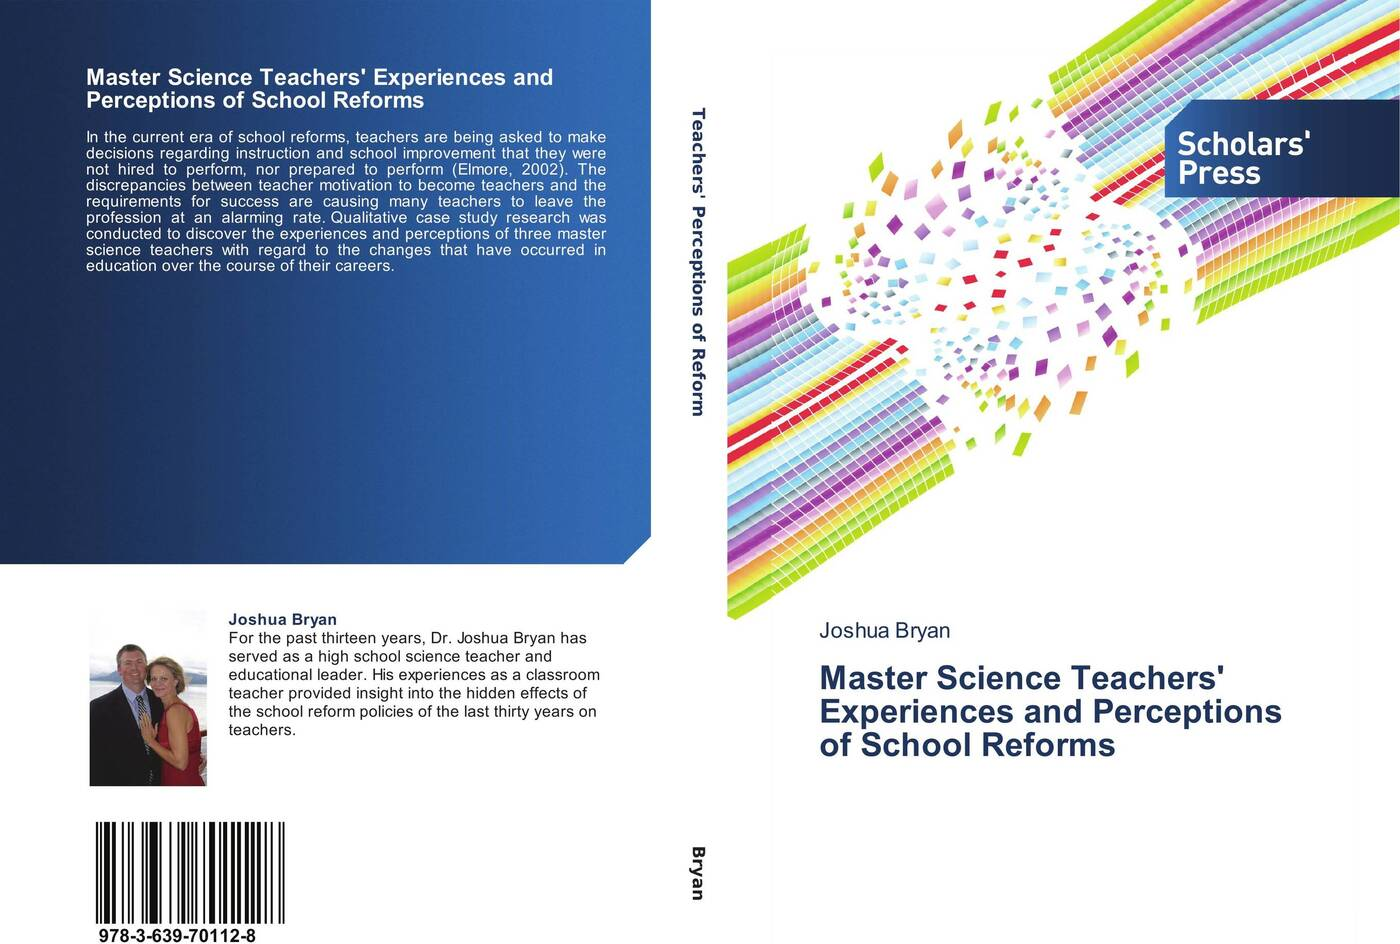 Joshua Bryan Master Science Teachers' Experiences and Perceptions of School Reforms mohamed mbarouk suleiman teachers experiences of teaching science with limited laboratory resources